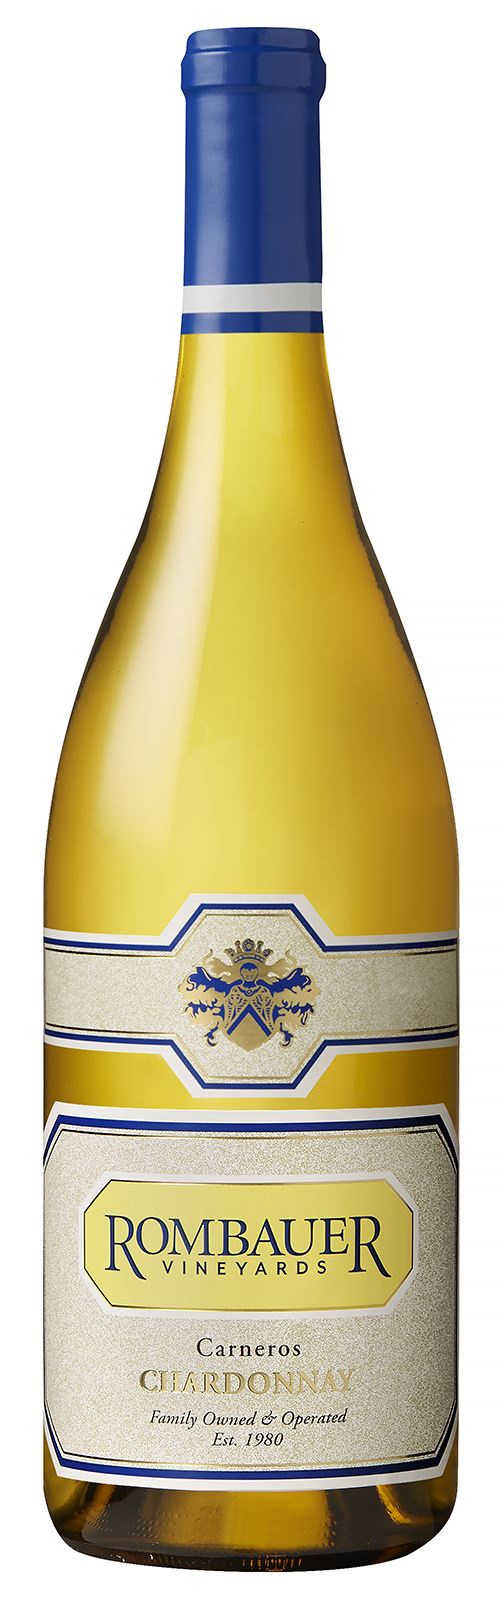 Rombauer Chardonnay Carneros 2015,  () from The BPW - Merchants of rare and fine wines.